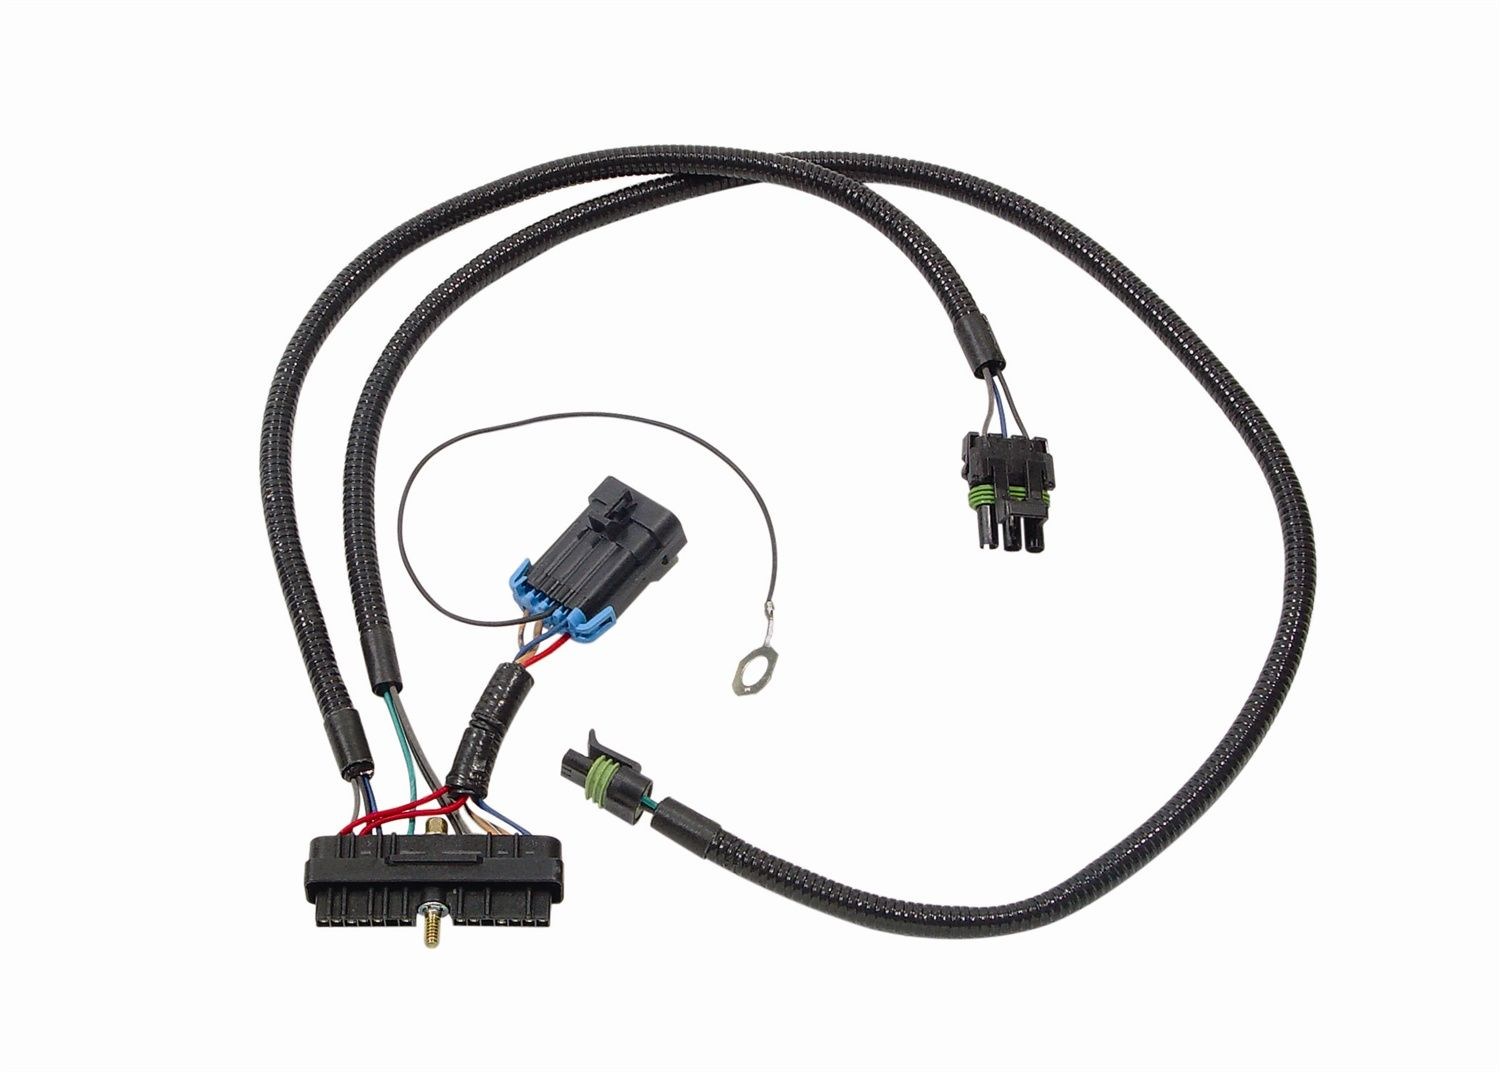 77659 accel ignition ignition control module tuner wiring harness for use with accel dfi fuel management system Stepper Motor Wire Harness